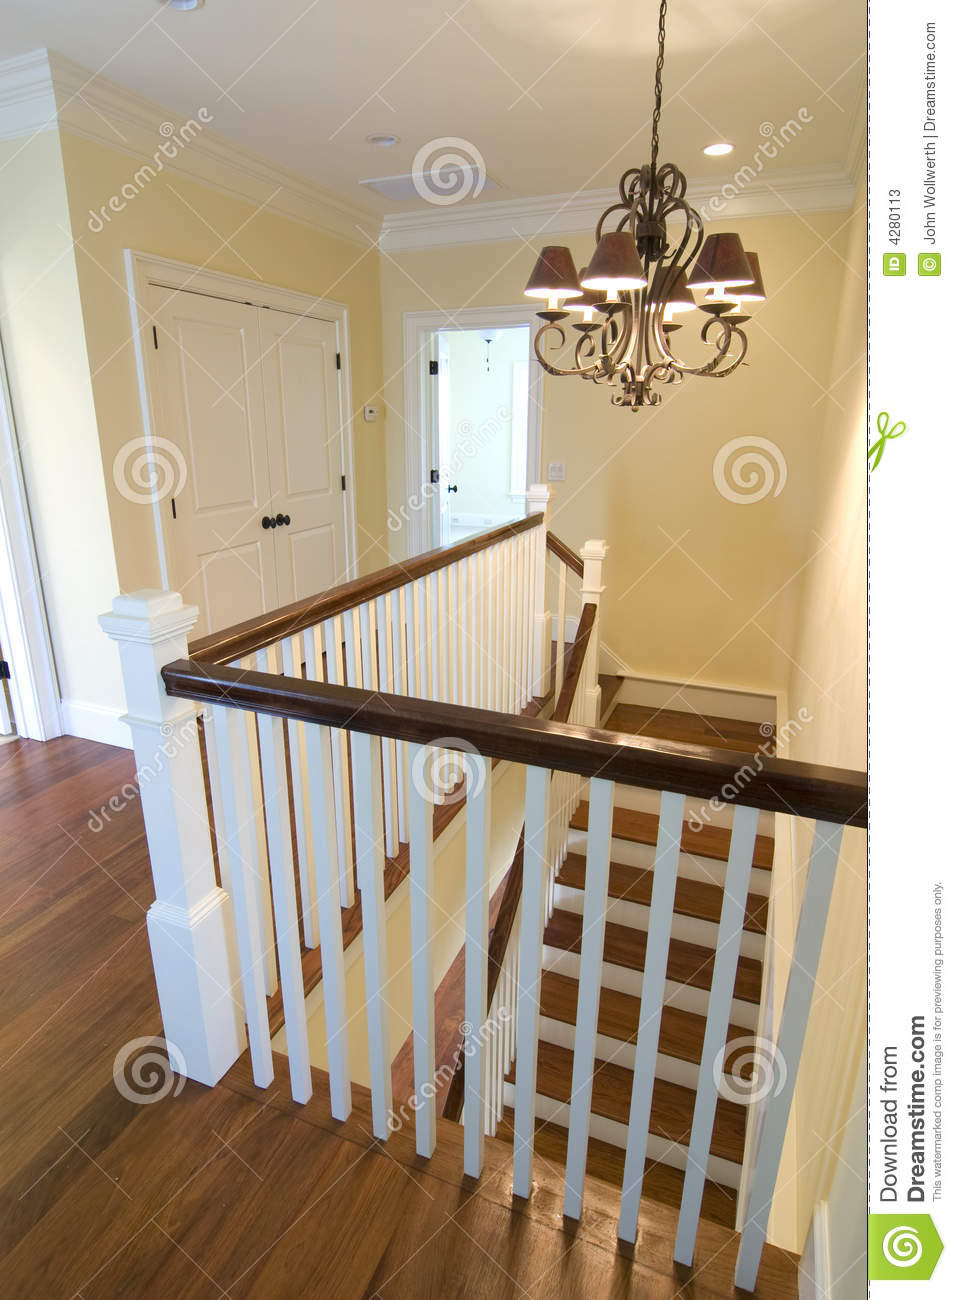 en haut cage d 39 escalier image stock image du construction 4280113. Black Bedroom Furniture Sets. Home Design Ideas